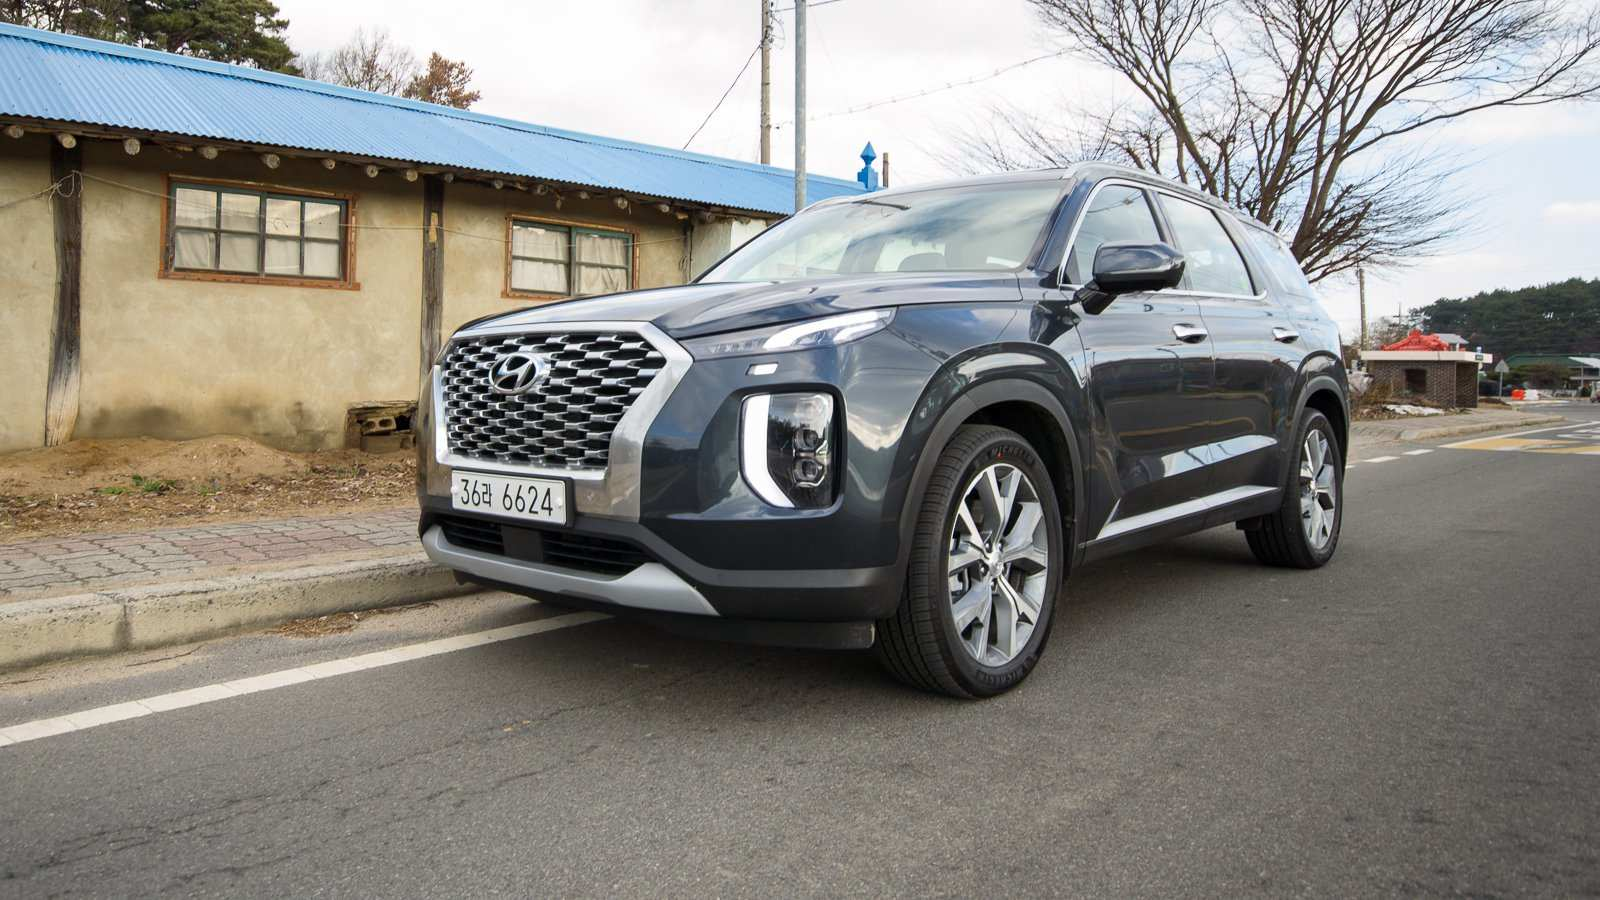 89 Great 2020 Hyundai Palisade Review Release Date for 2020 Hyundai Palisade Review